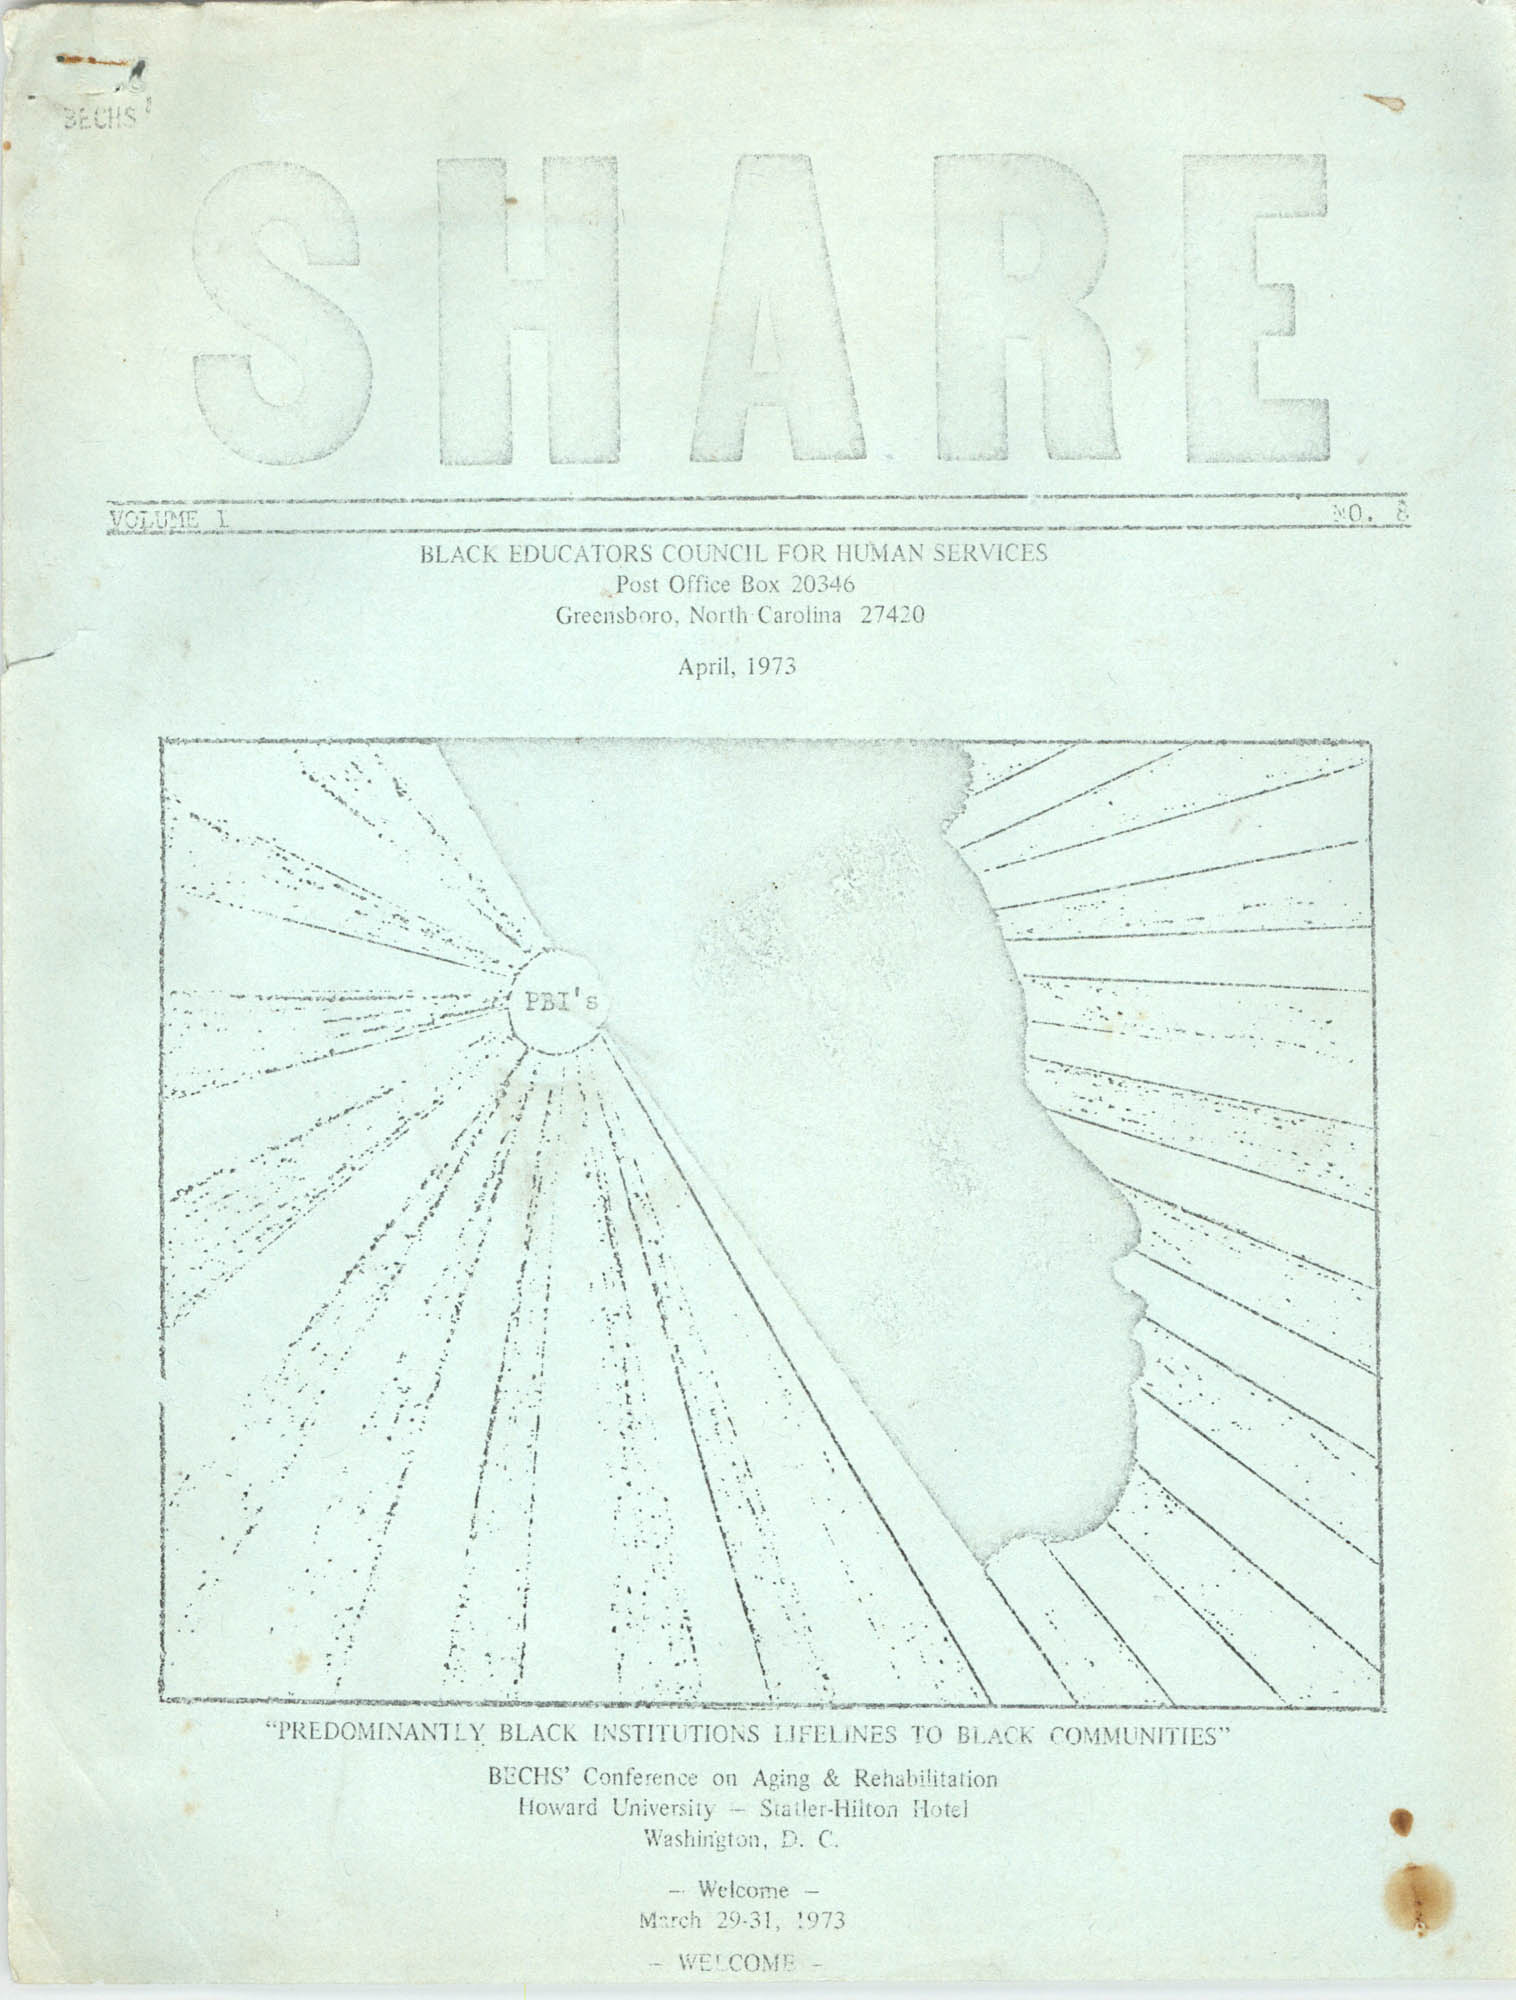 SHARE, Volume I, Number 8, April 1973